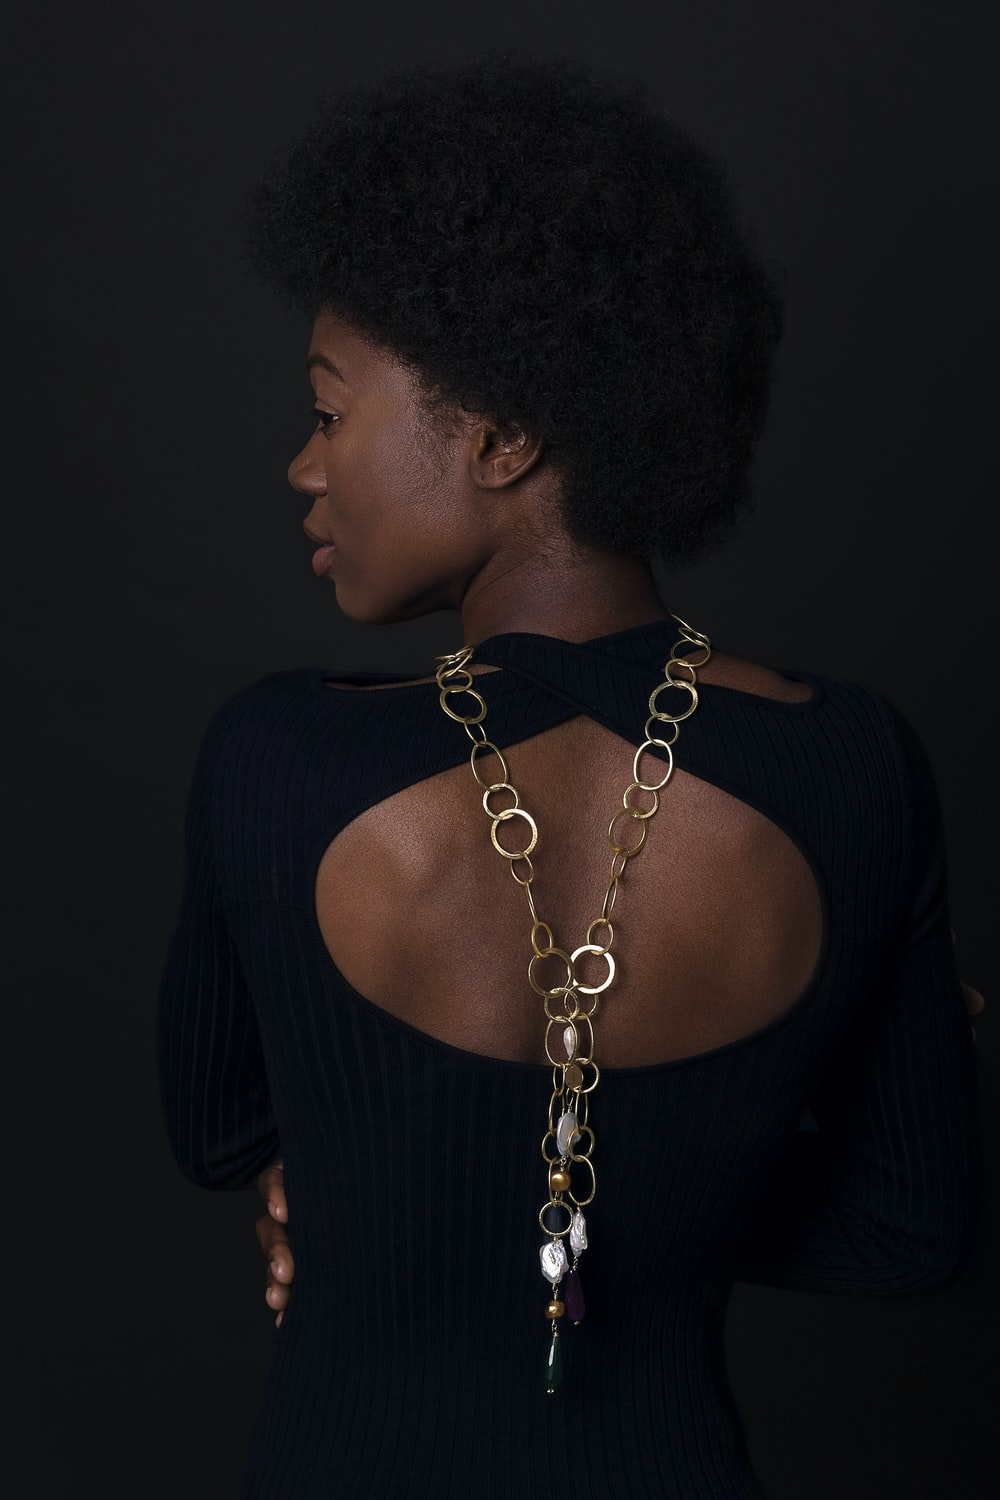 woman in black dress with silver-colored necklace